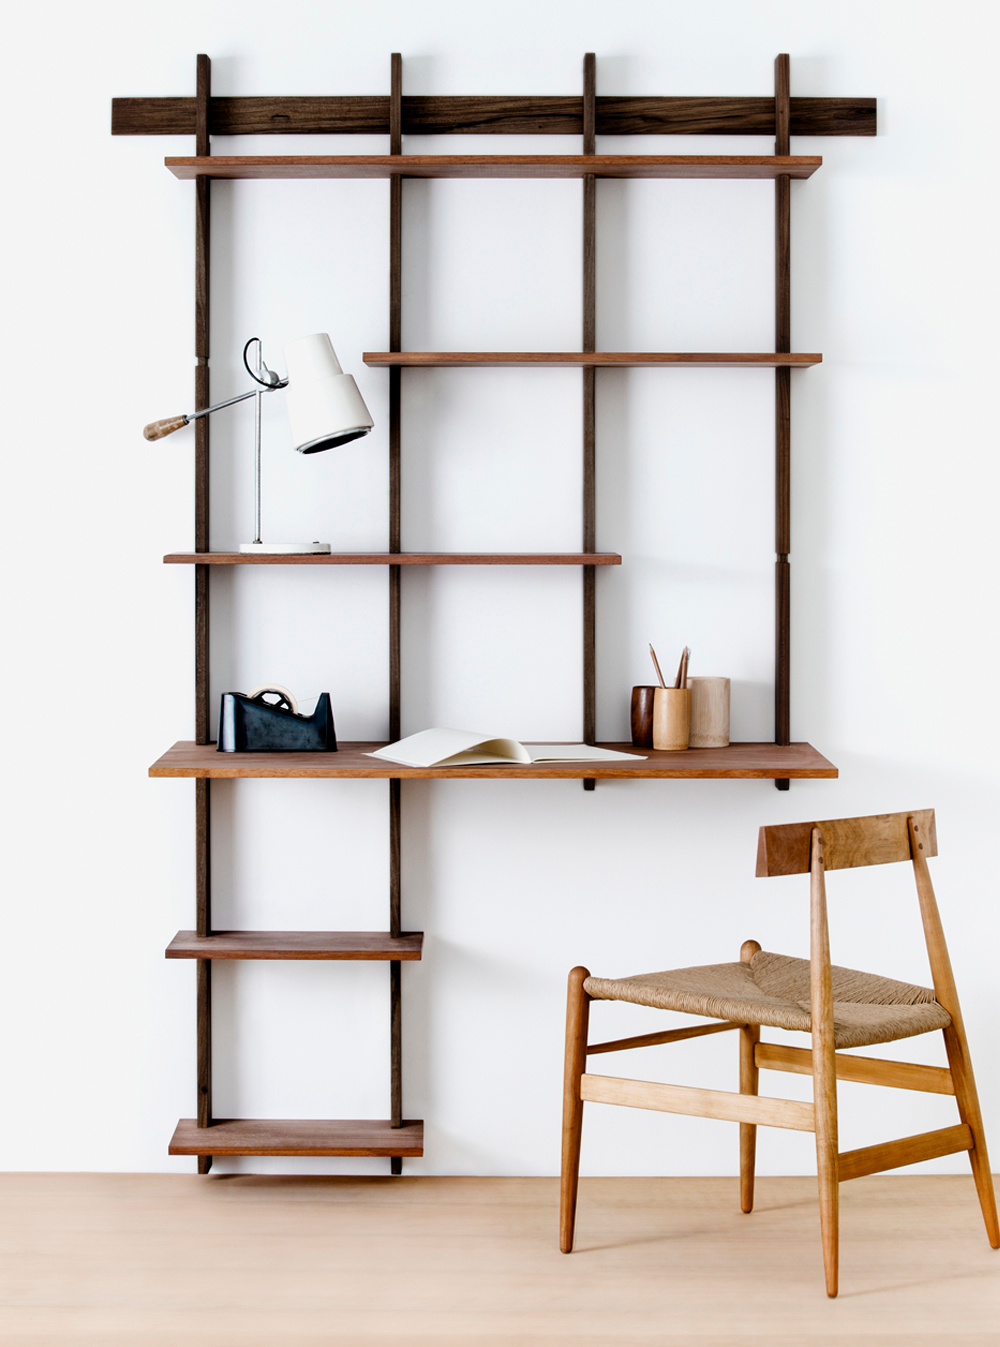 Sticotti Bookshelf Kit G Sticotti Modular Furniture Shelving Modular Shelving